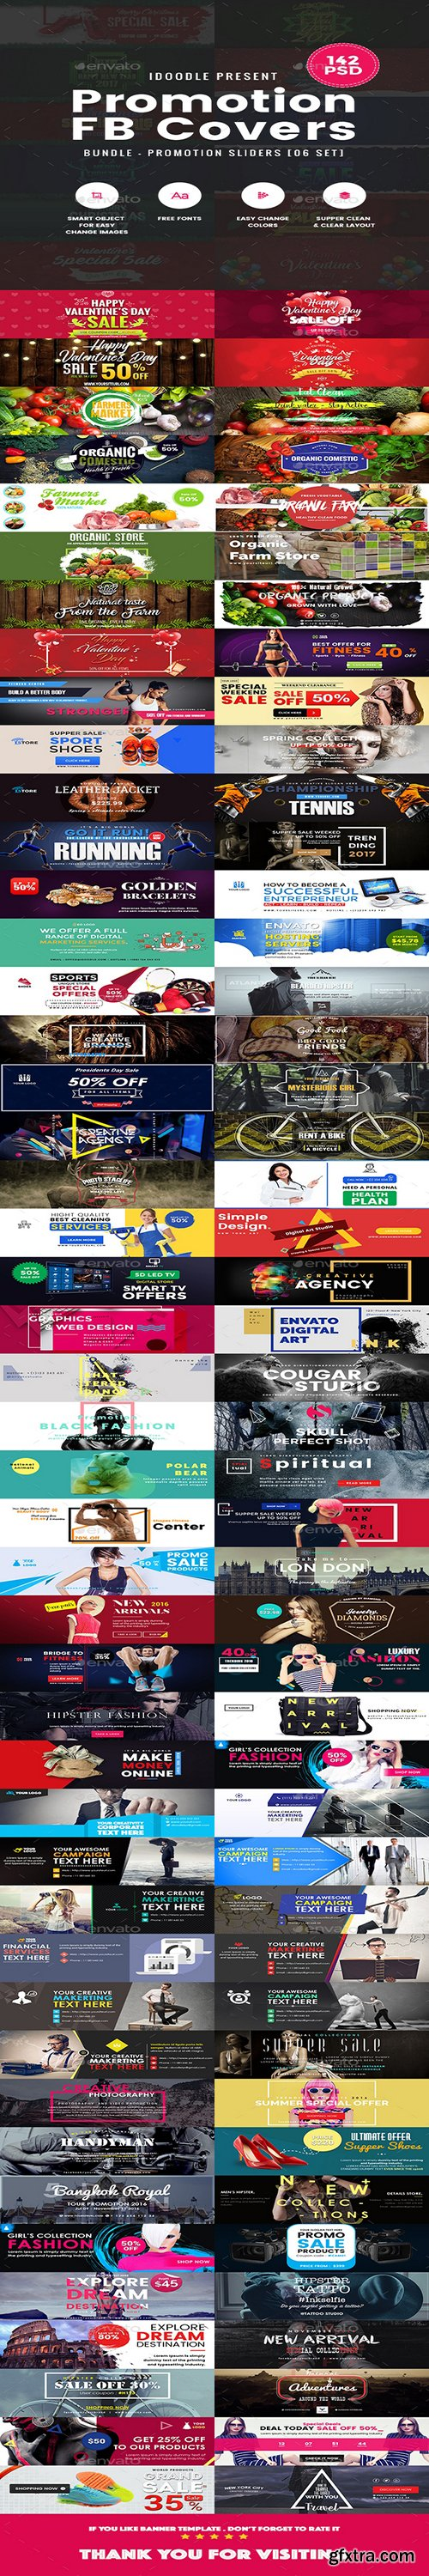 Graphicriver - Bundle Facebook Timeline Covers - 142 PSD [06 Sets] 19557957